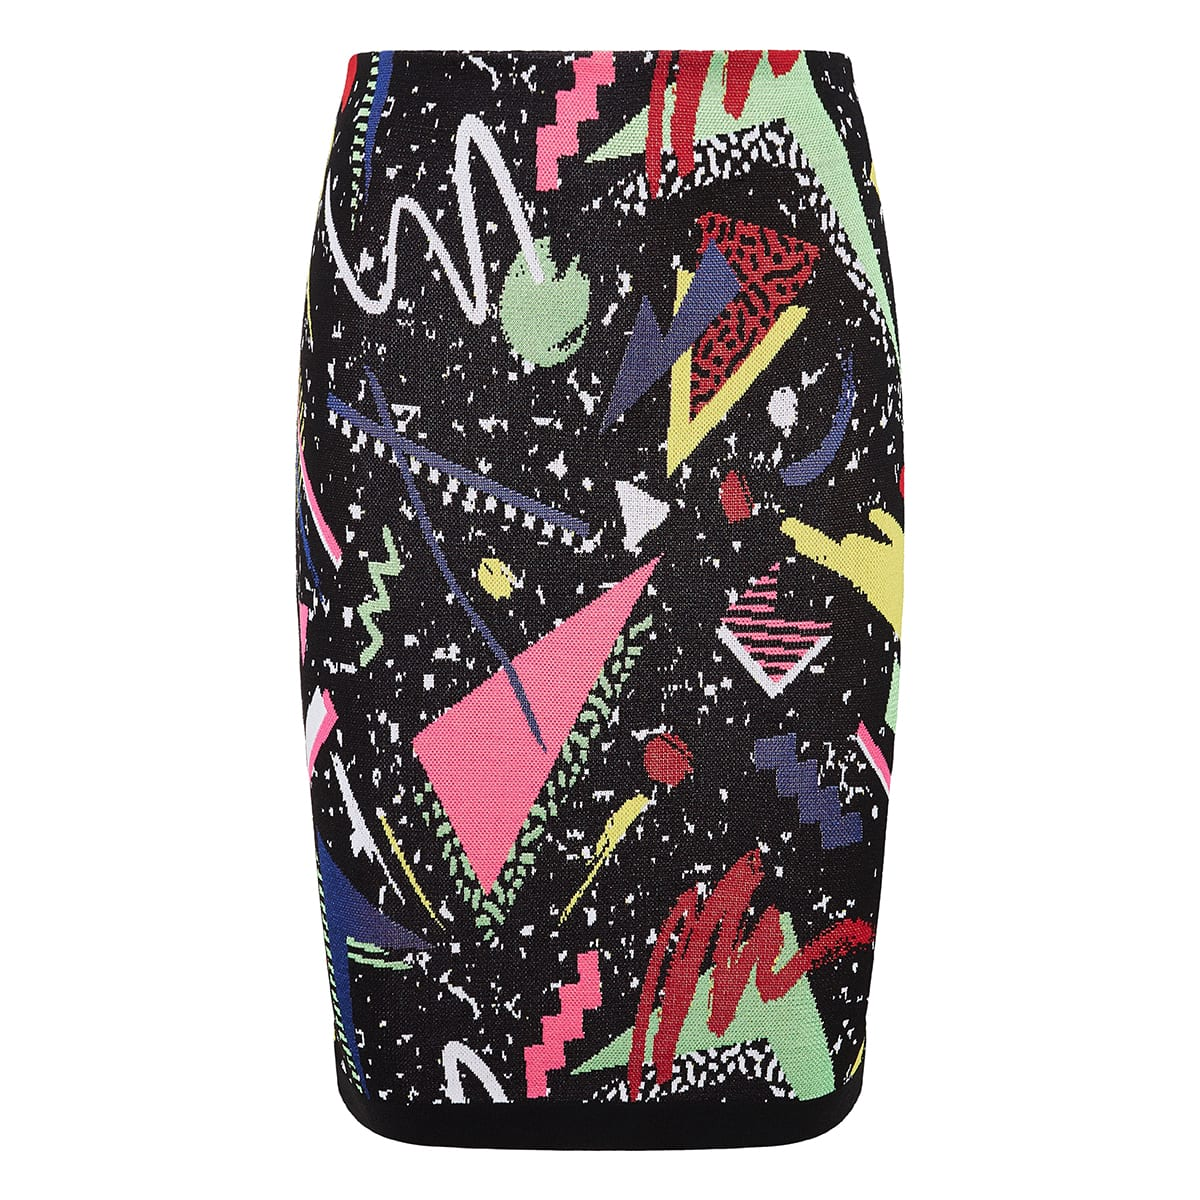 Jacquard-knit patterned pencil skirt